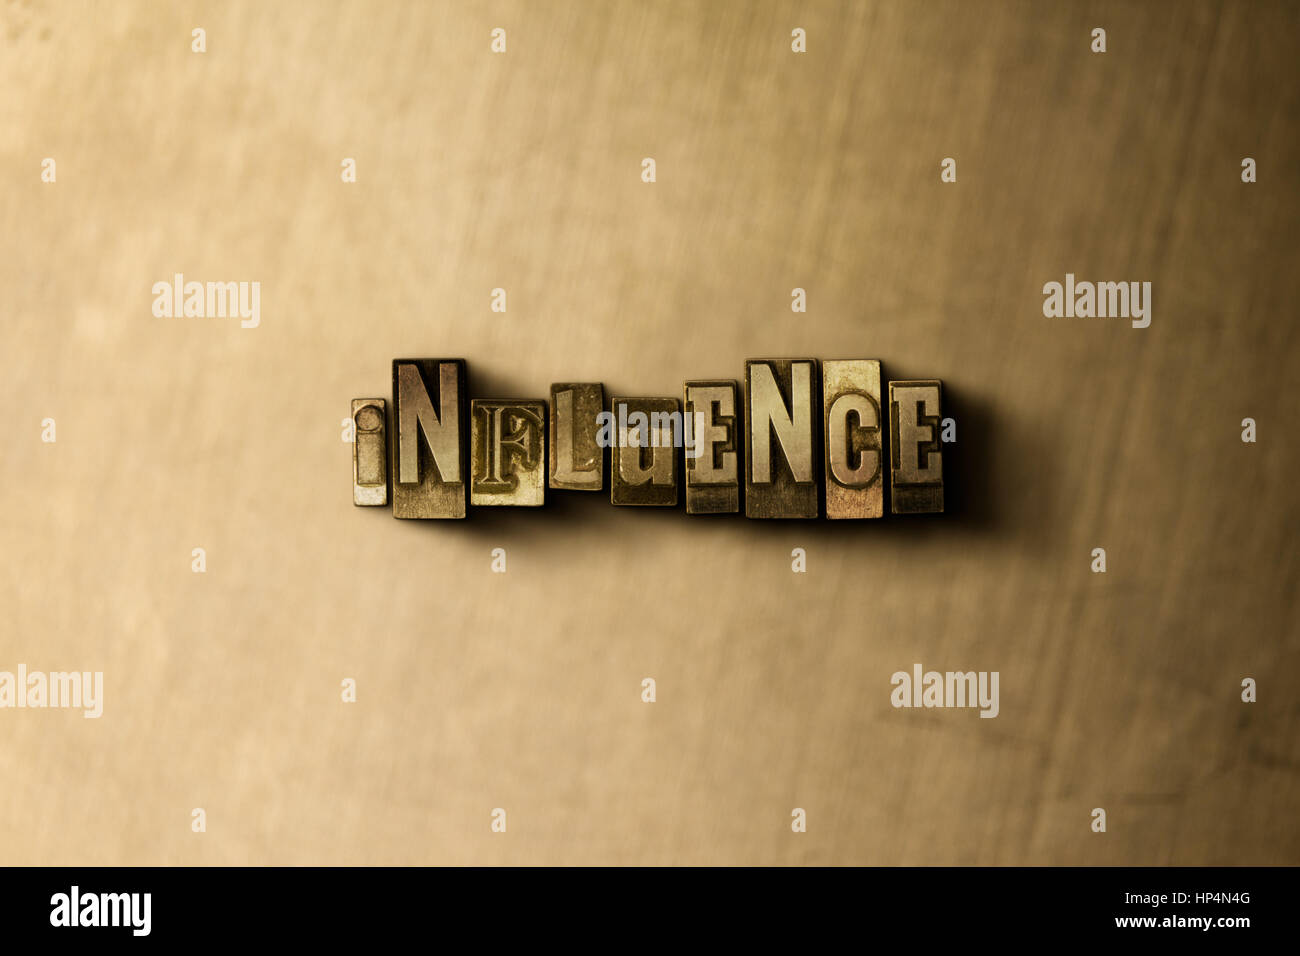 INFLUENCE - close-up of grungy vintage typeset word on metal backdrop. Royalty free stock illustration.  Can be - Stock Image